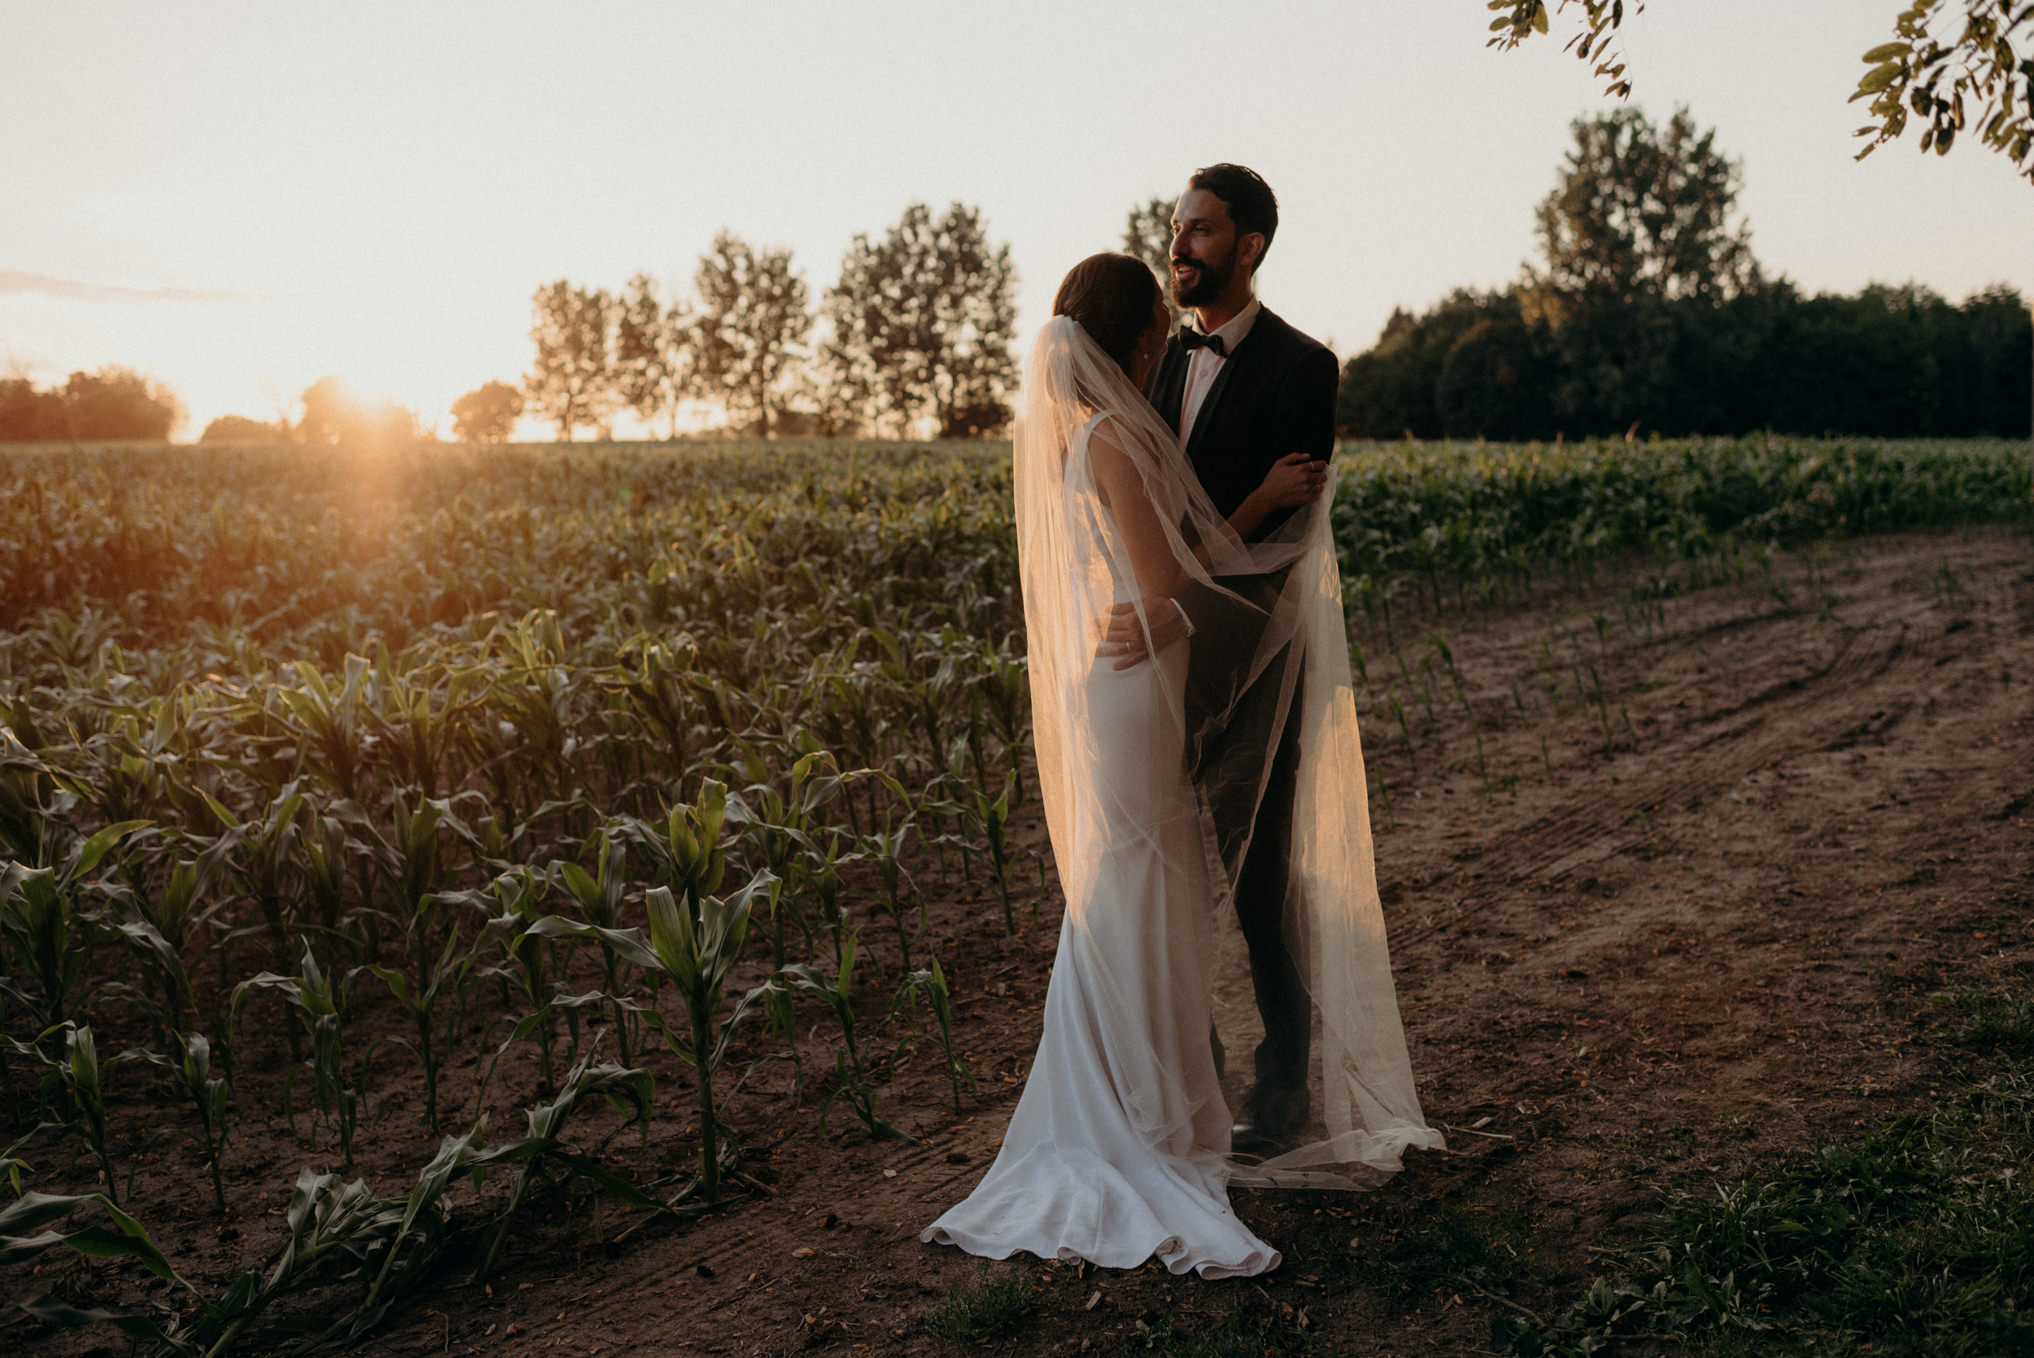 sunset portrait of wedding couple hugging in a field